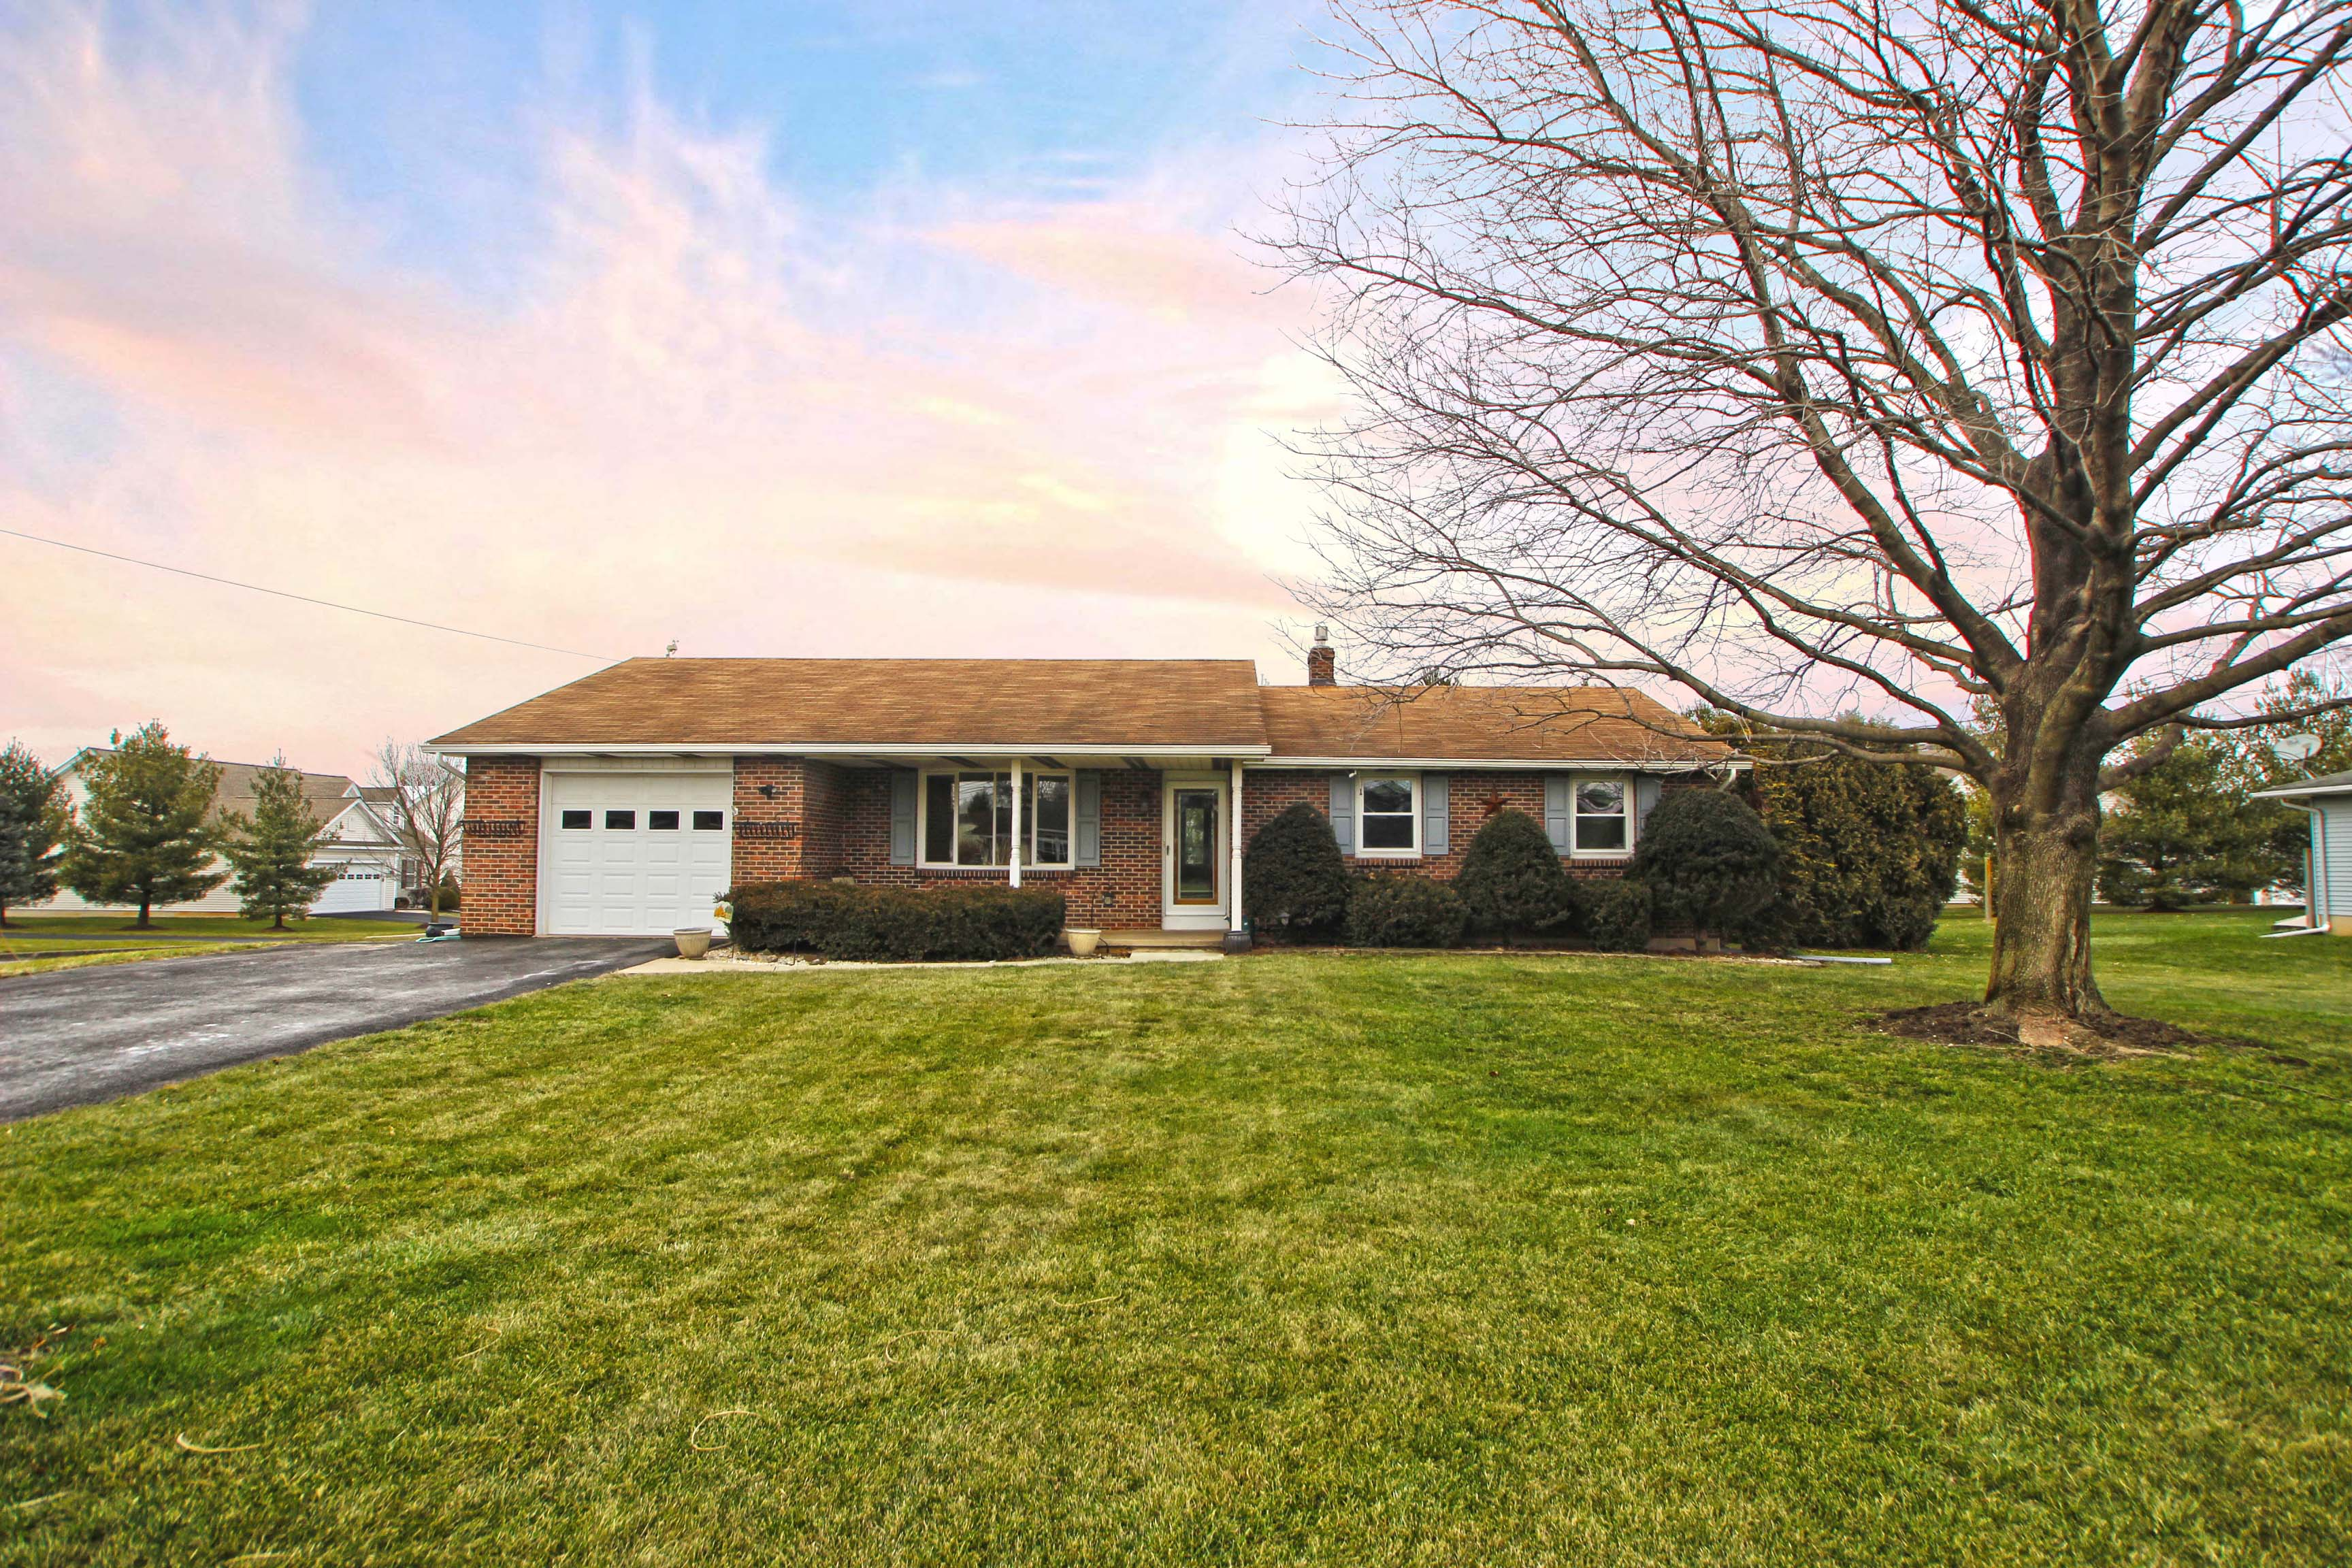 Forks Twp Home For Sale Just Listed!